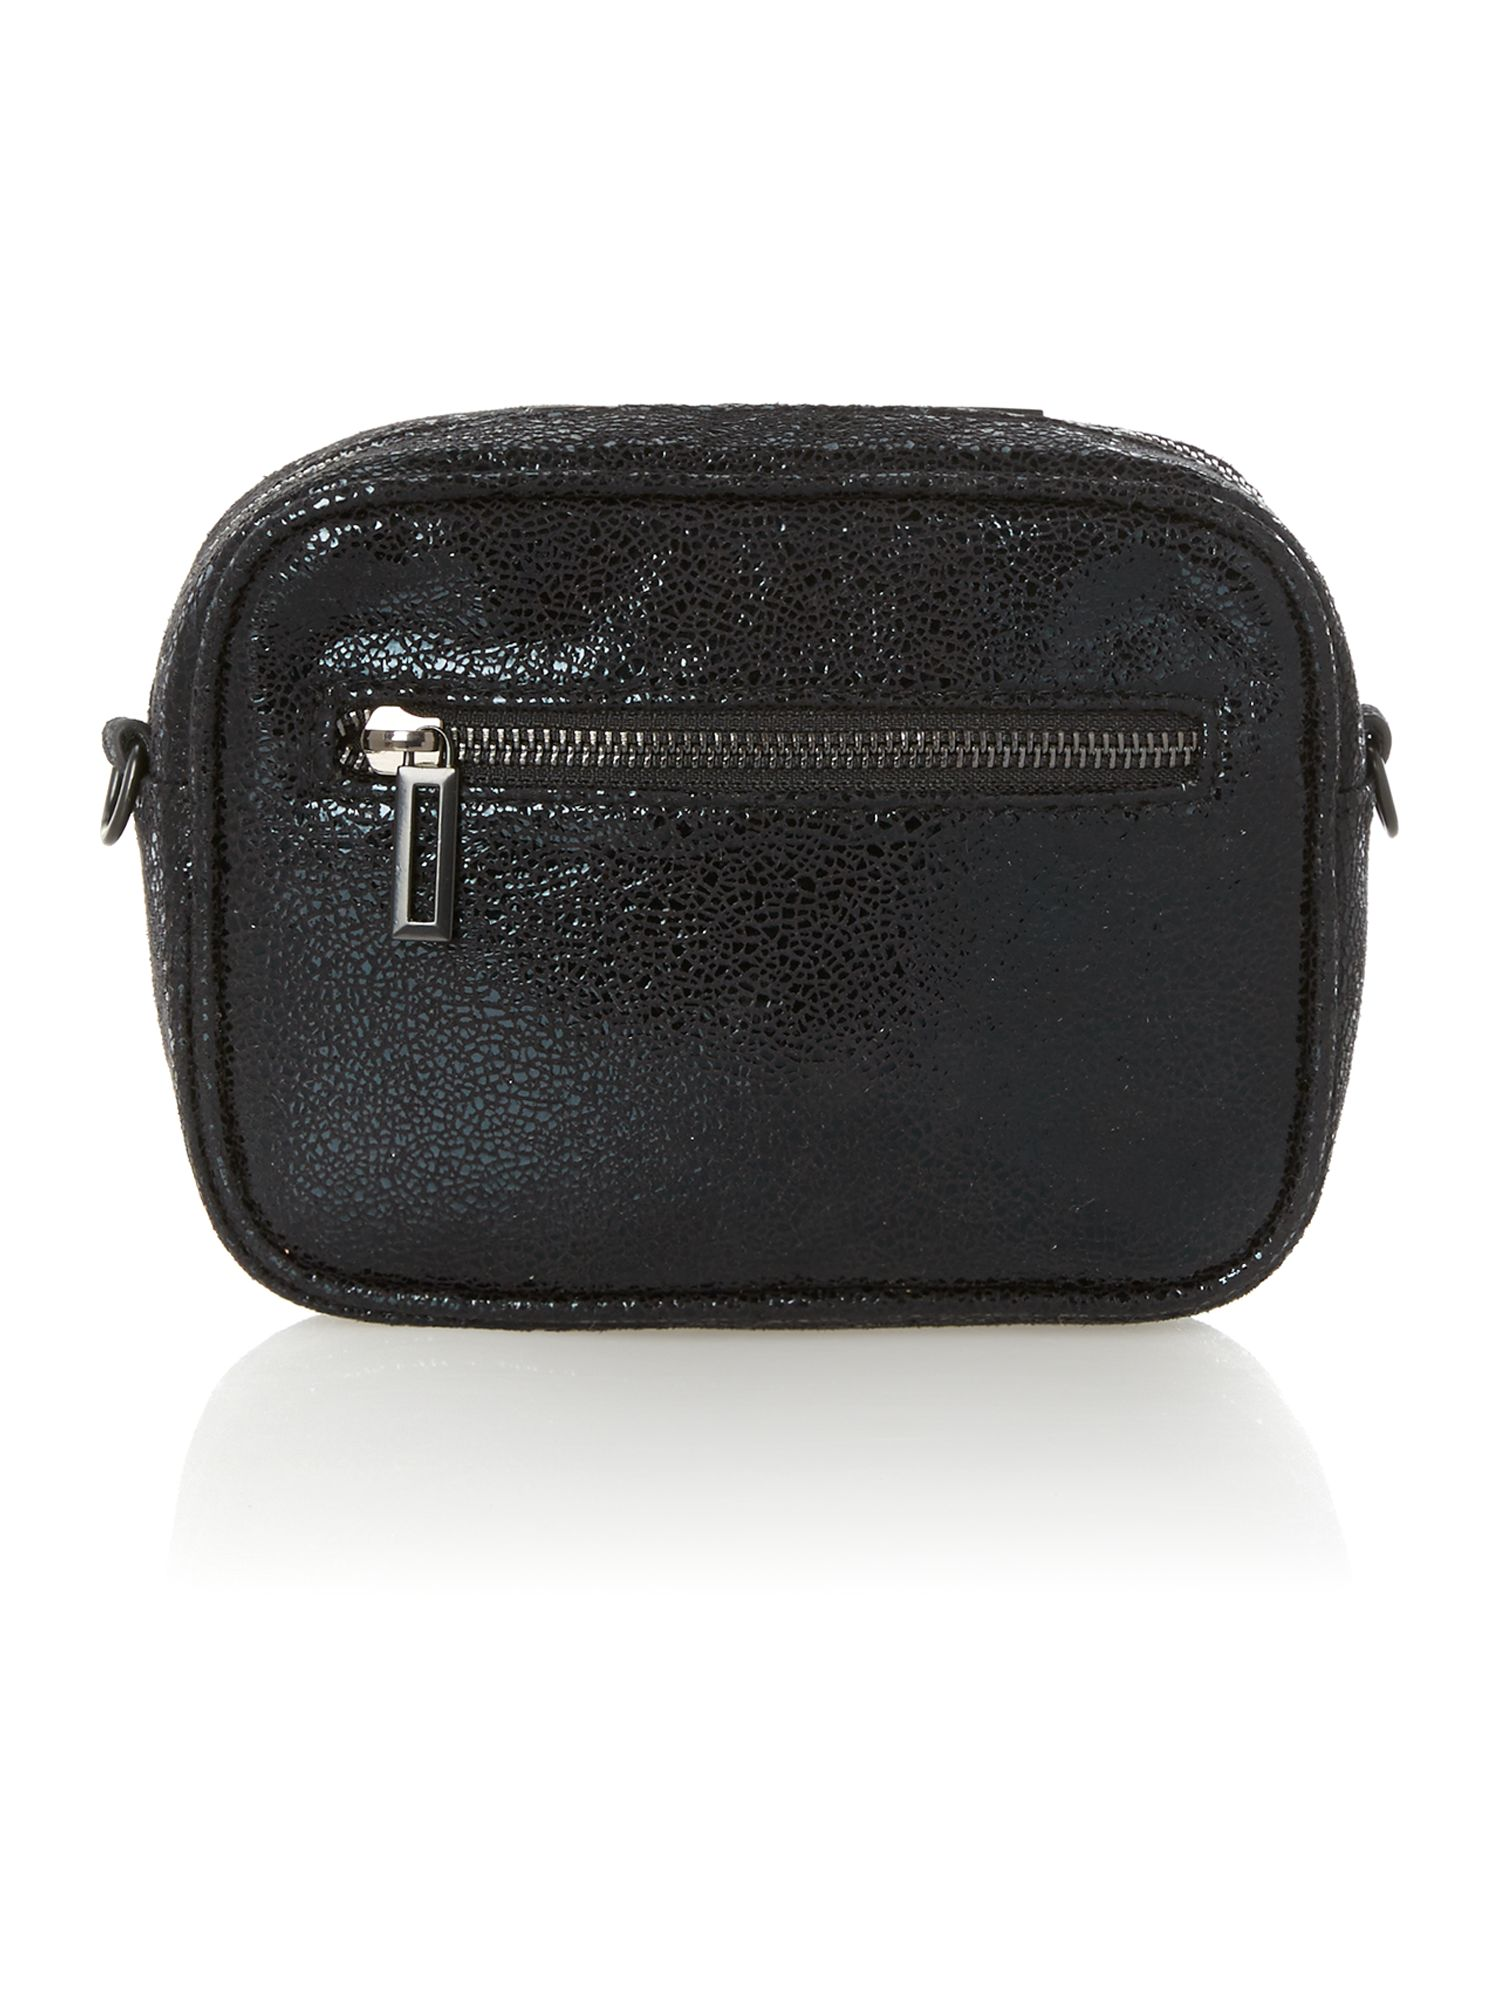 Nico micro mini bag